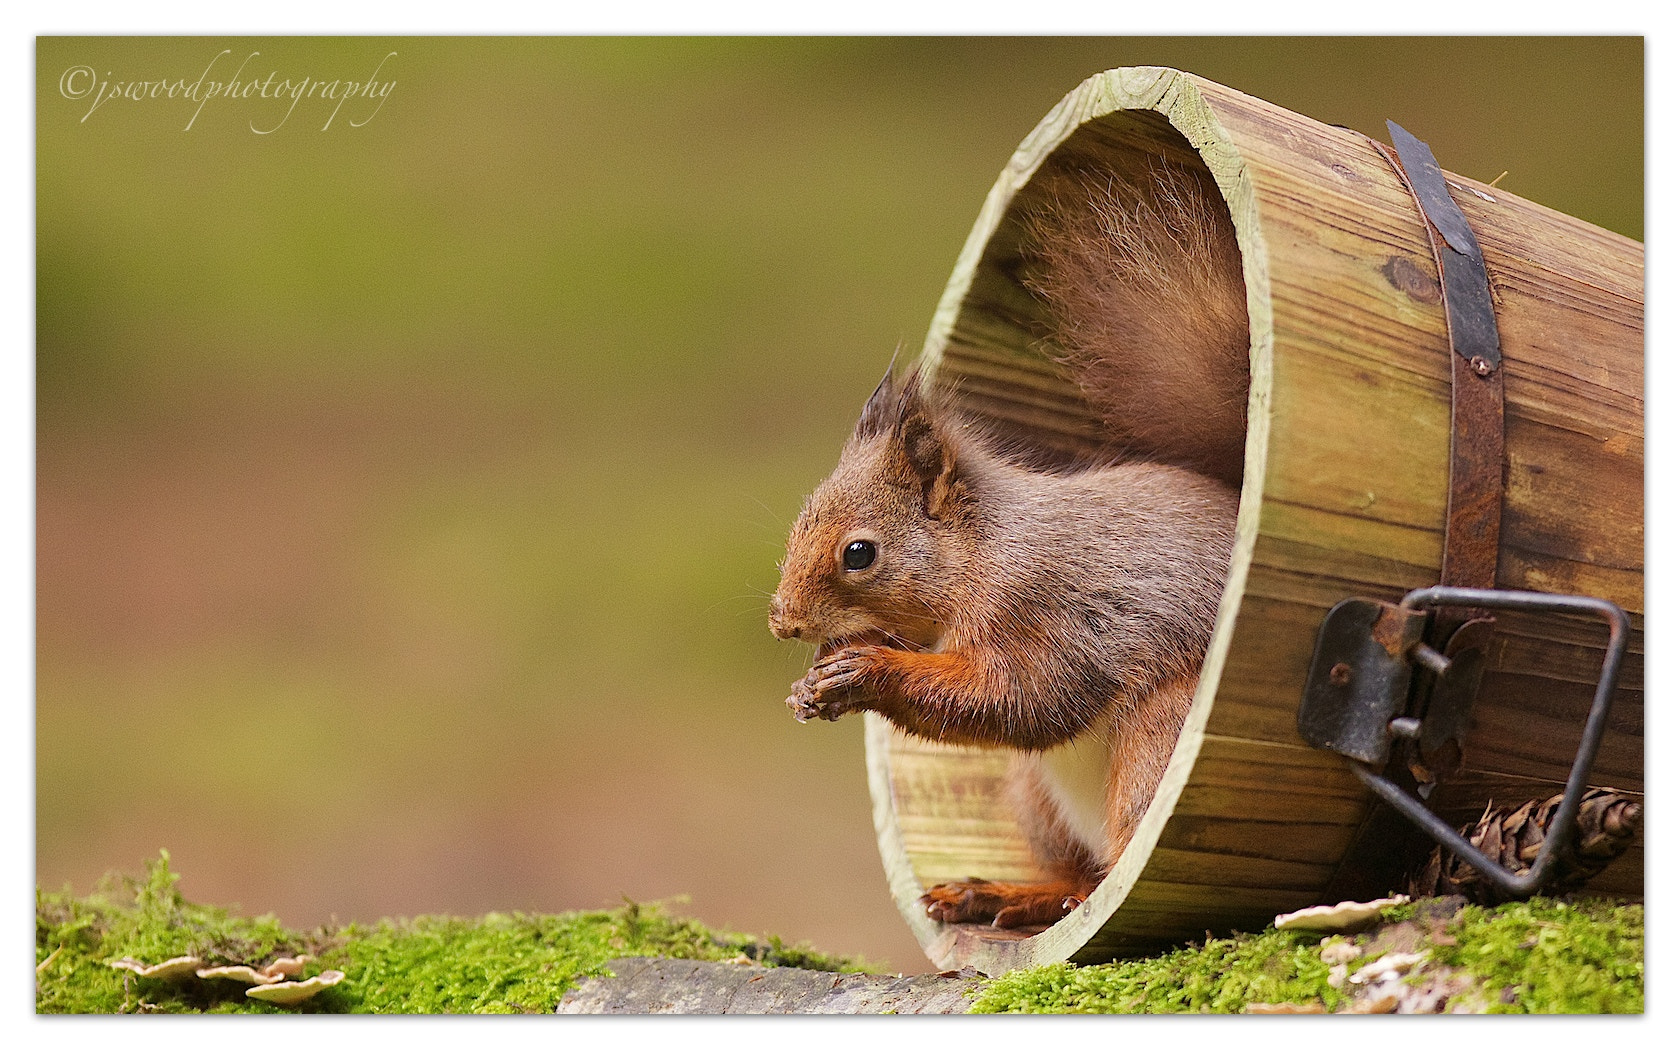 Photograph Red Squirrel by Jason Wood on 500px